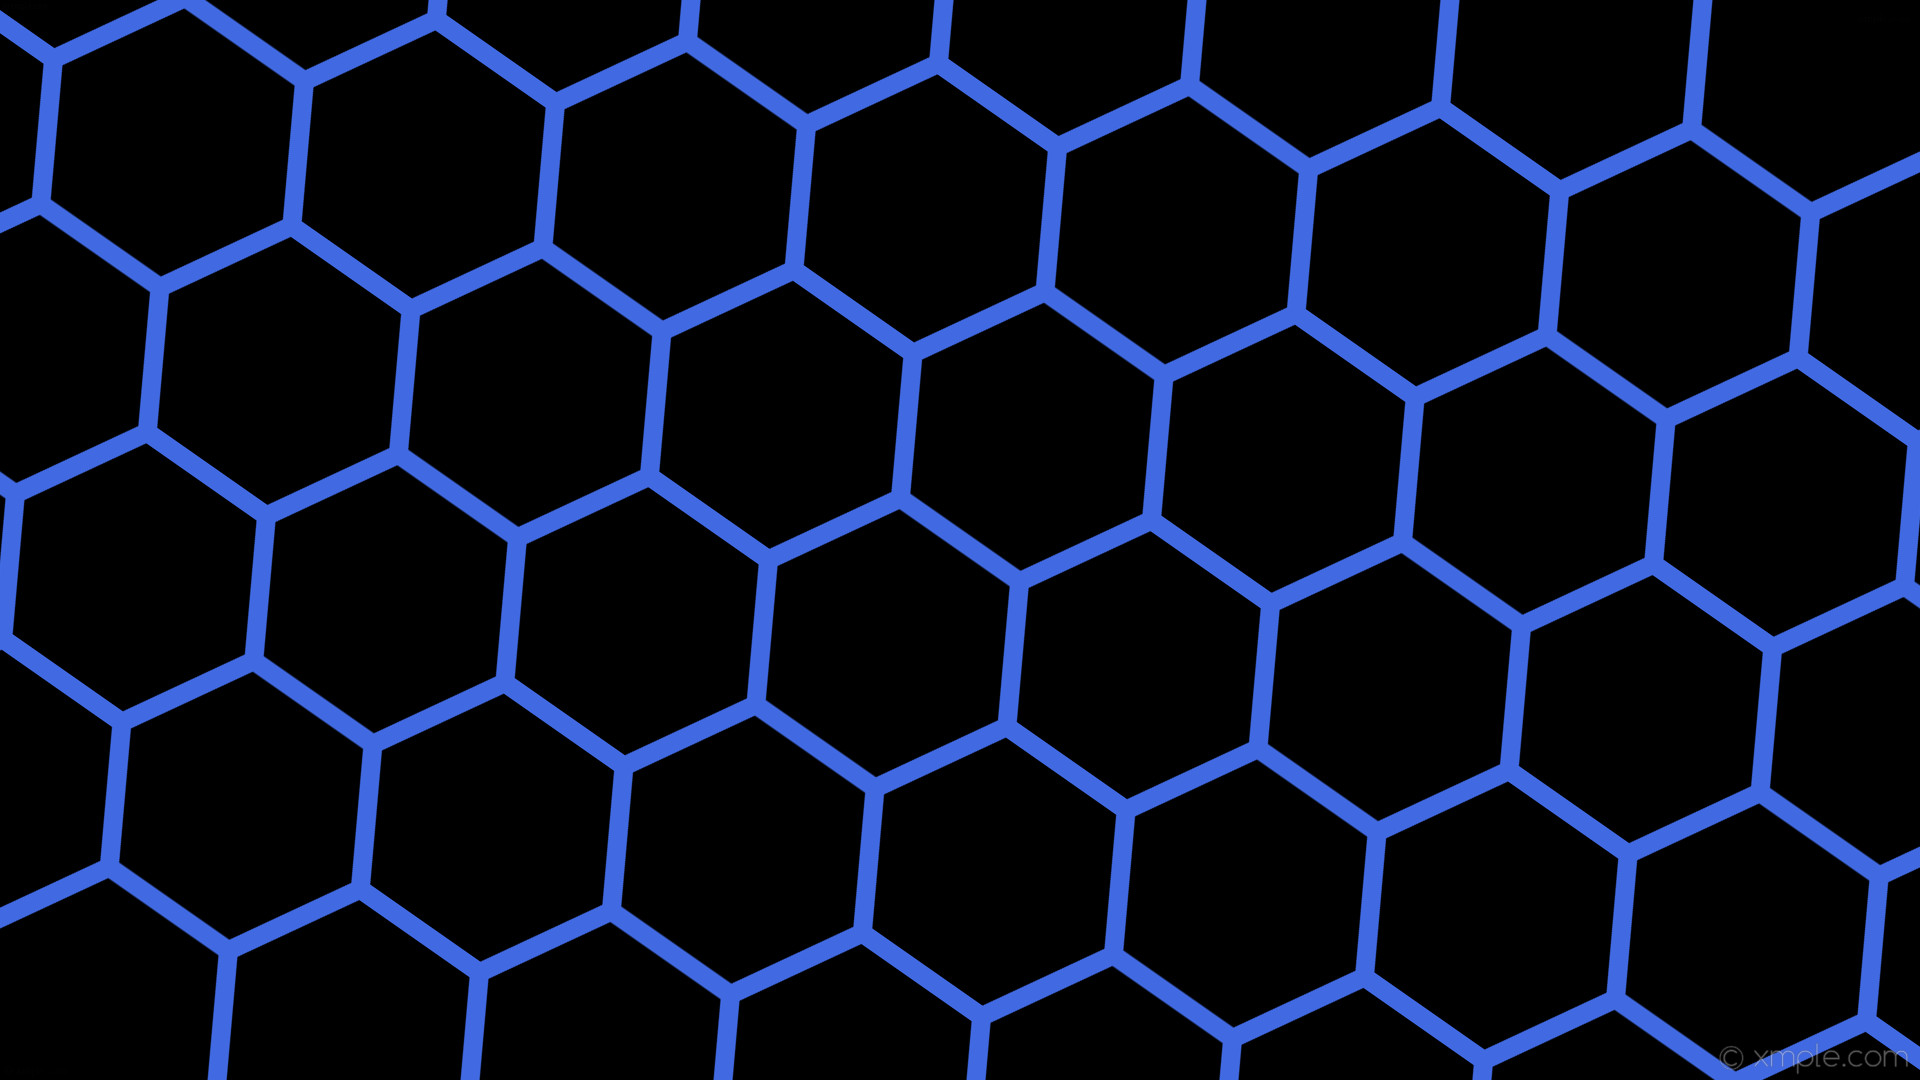 1920x1080 wallpaper beehive blue honeycomb hexagon black royal blue #000000 #4169e1  diagonal 55° 19px